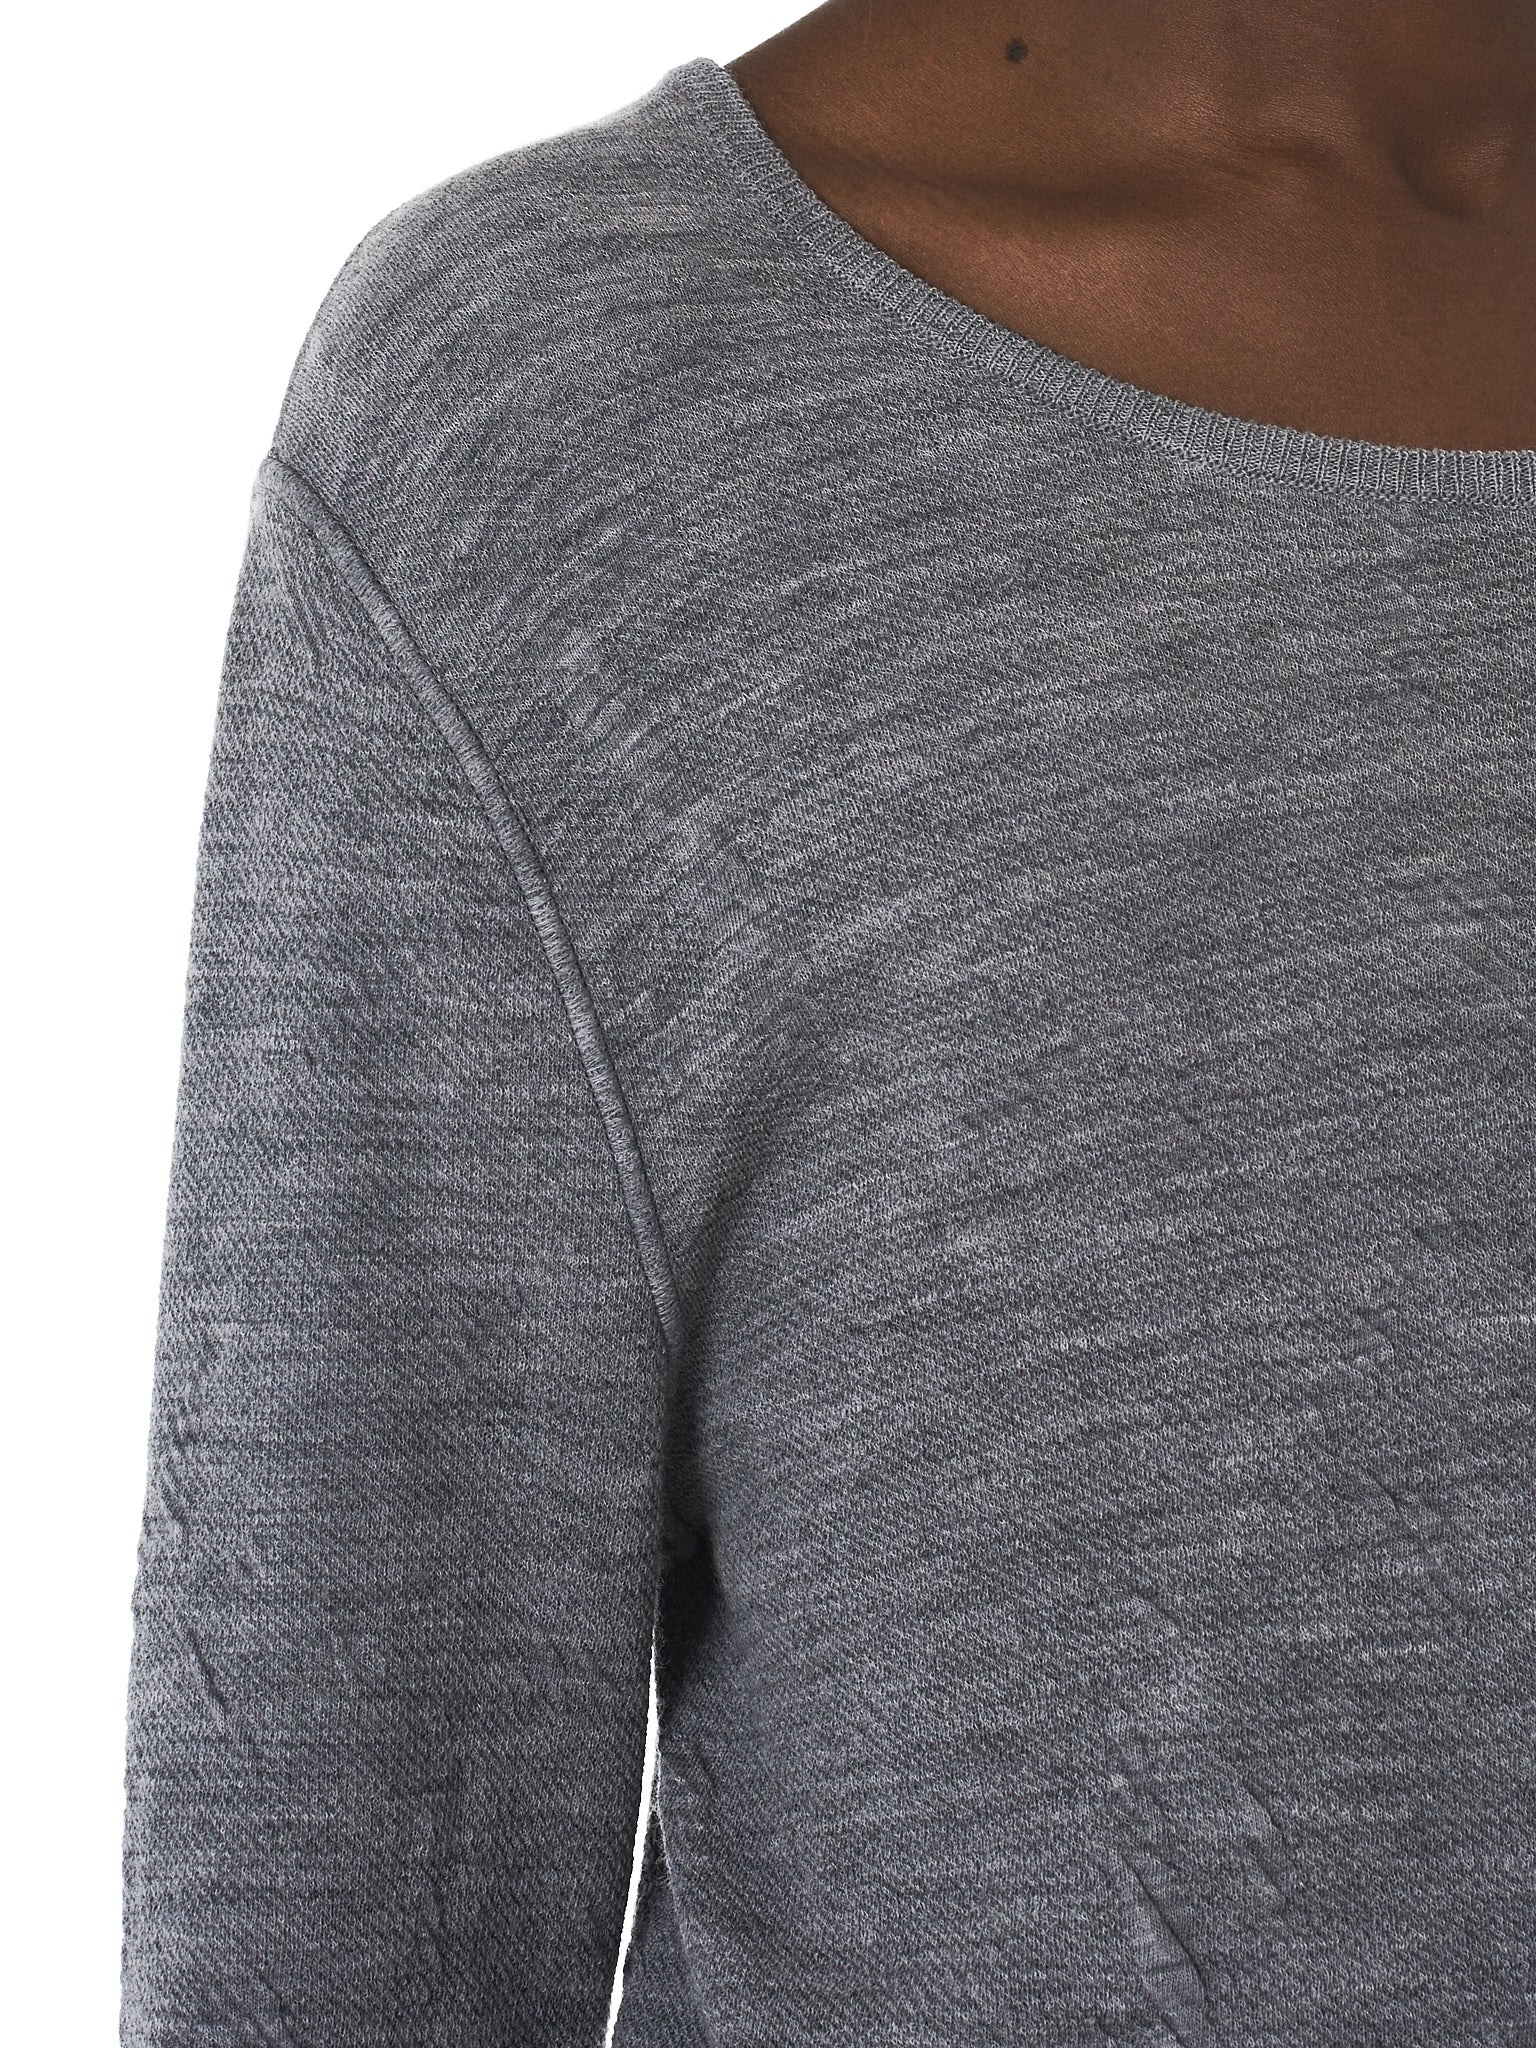 Deepti Long-Sleeve Tee - Hlorenzo Detail 1